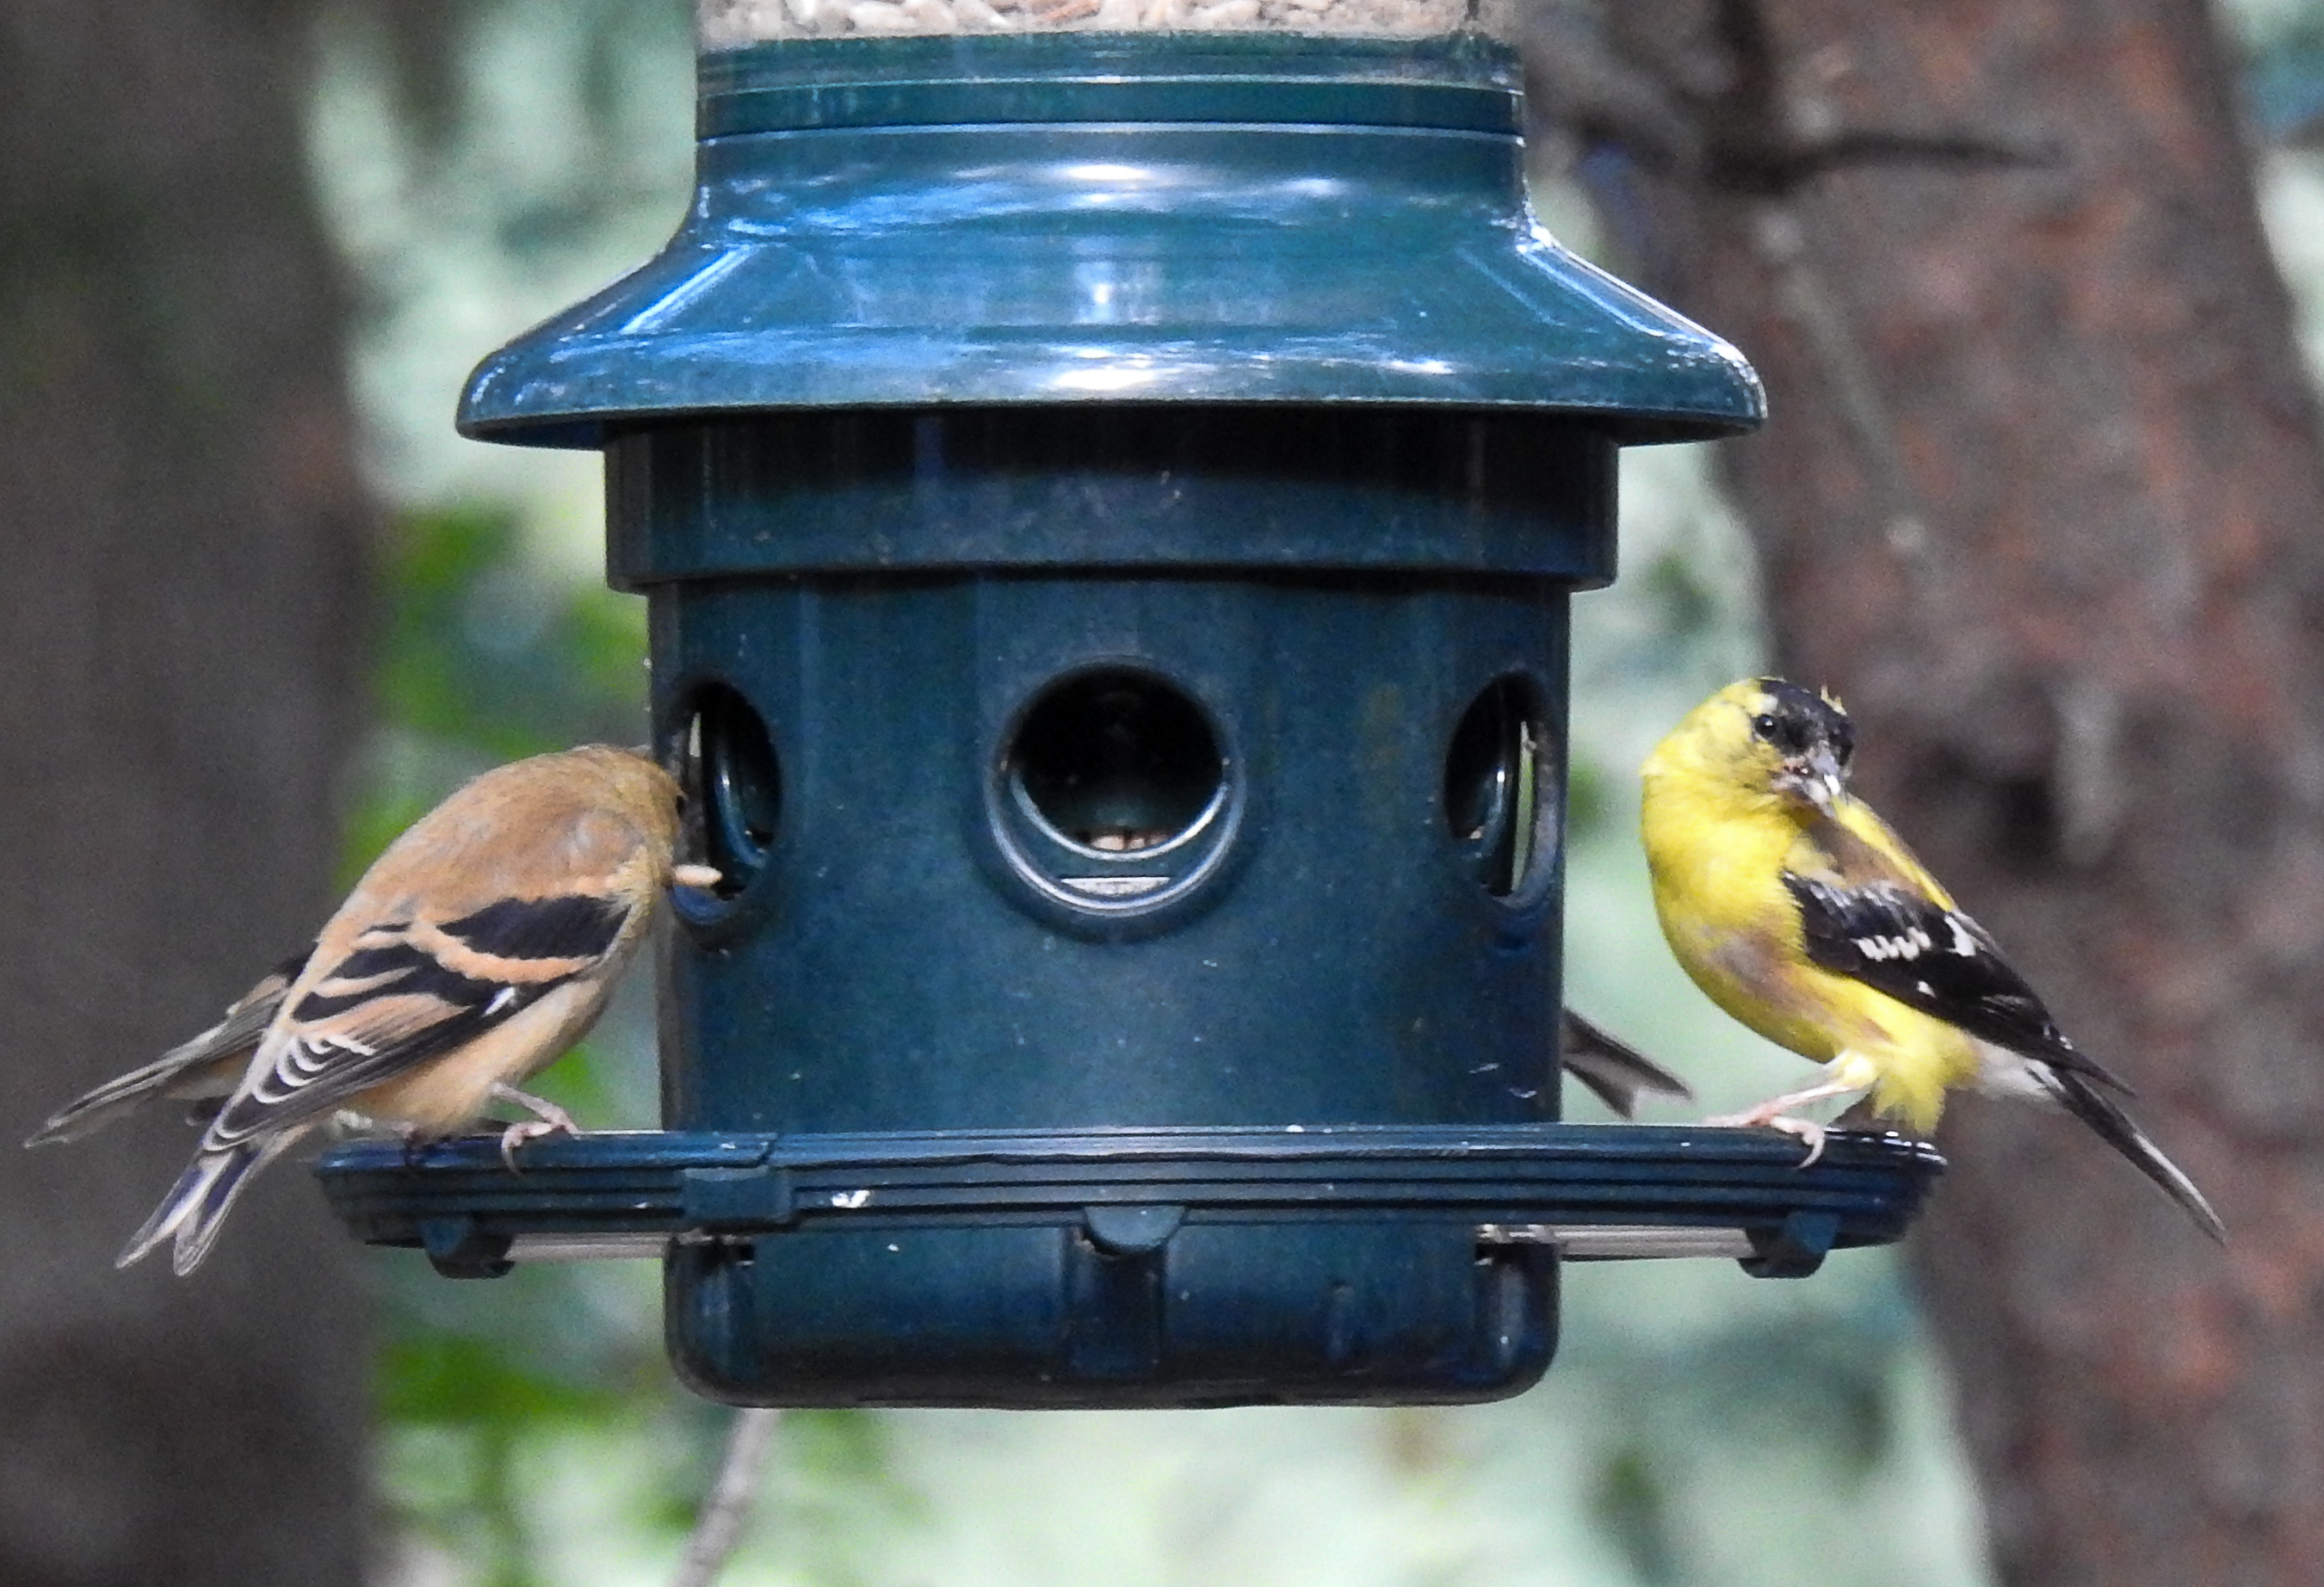 Fall American Goldfinches: The Male American Goldfinch on the Right is Still Transitioning into Winter Feathers.